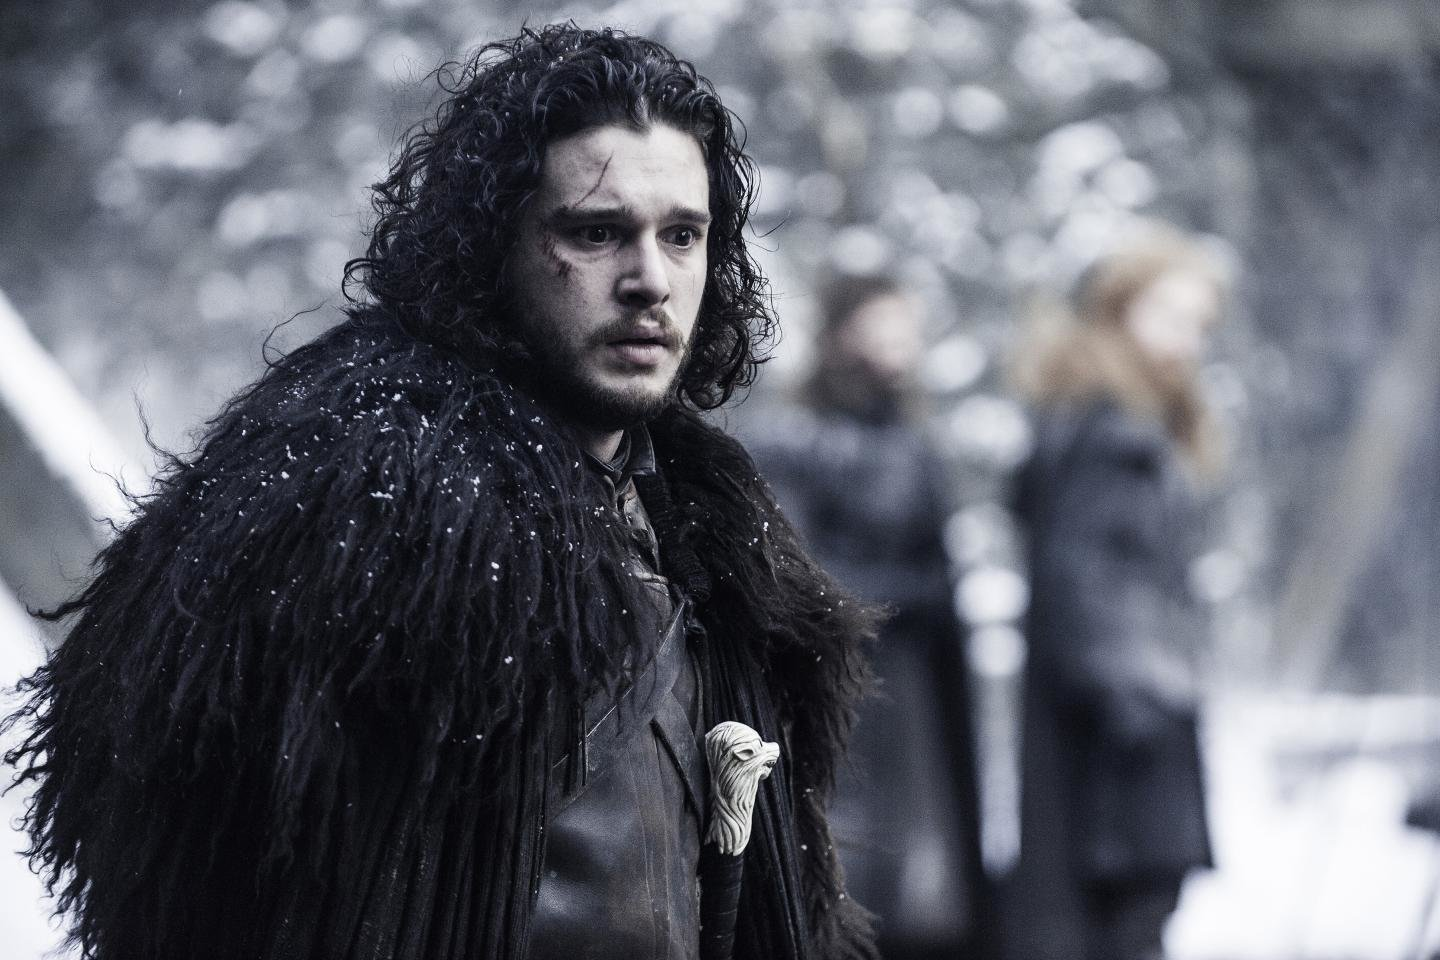 Free Download Jon Snow Wallpaper Id382686 Hd 1440x960 For Pc